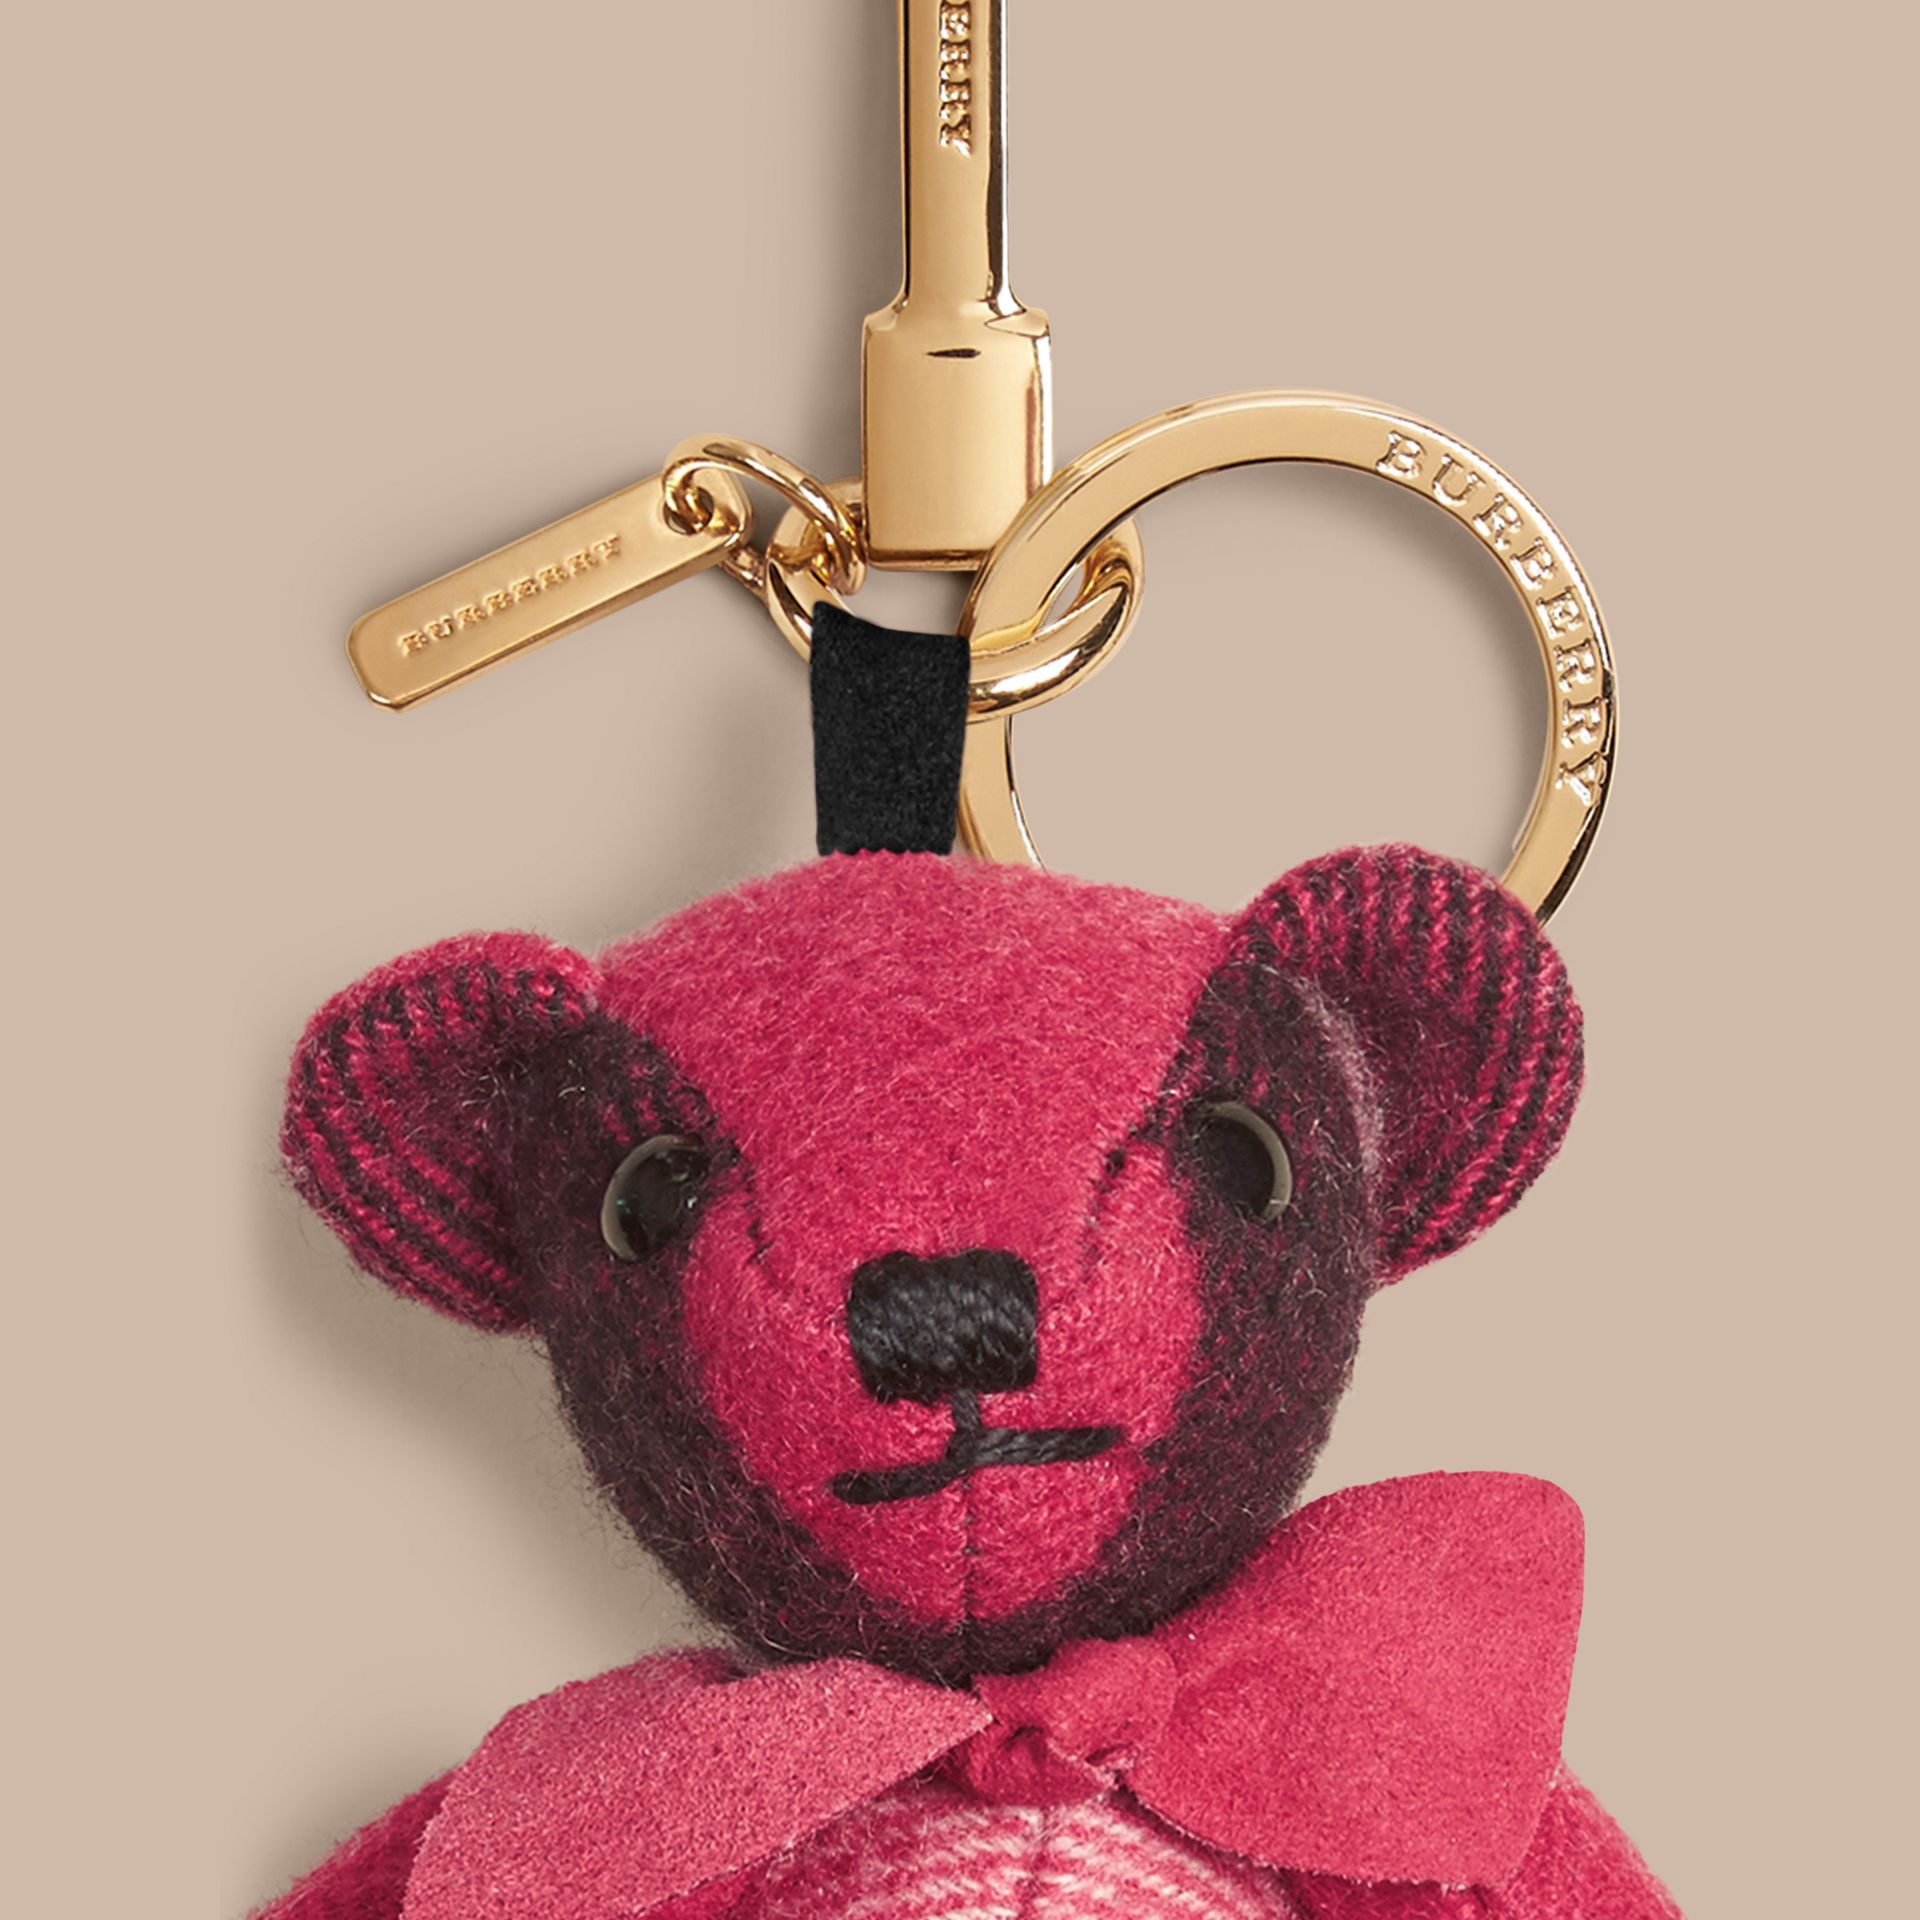 Thomas Bear Charm in Check Cashmere in Fuchsia Pink | Burberry - gallery image 2